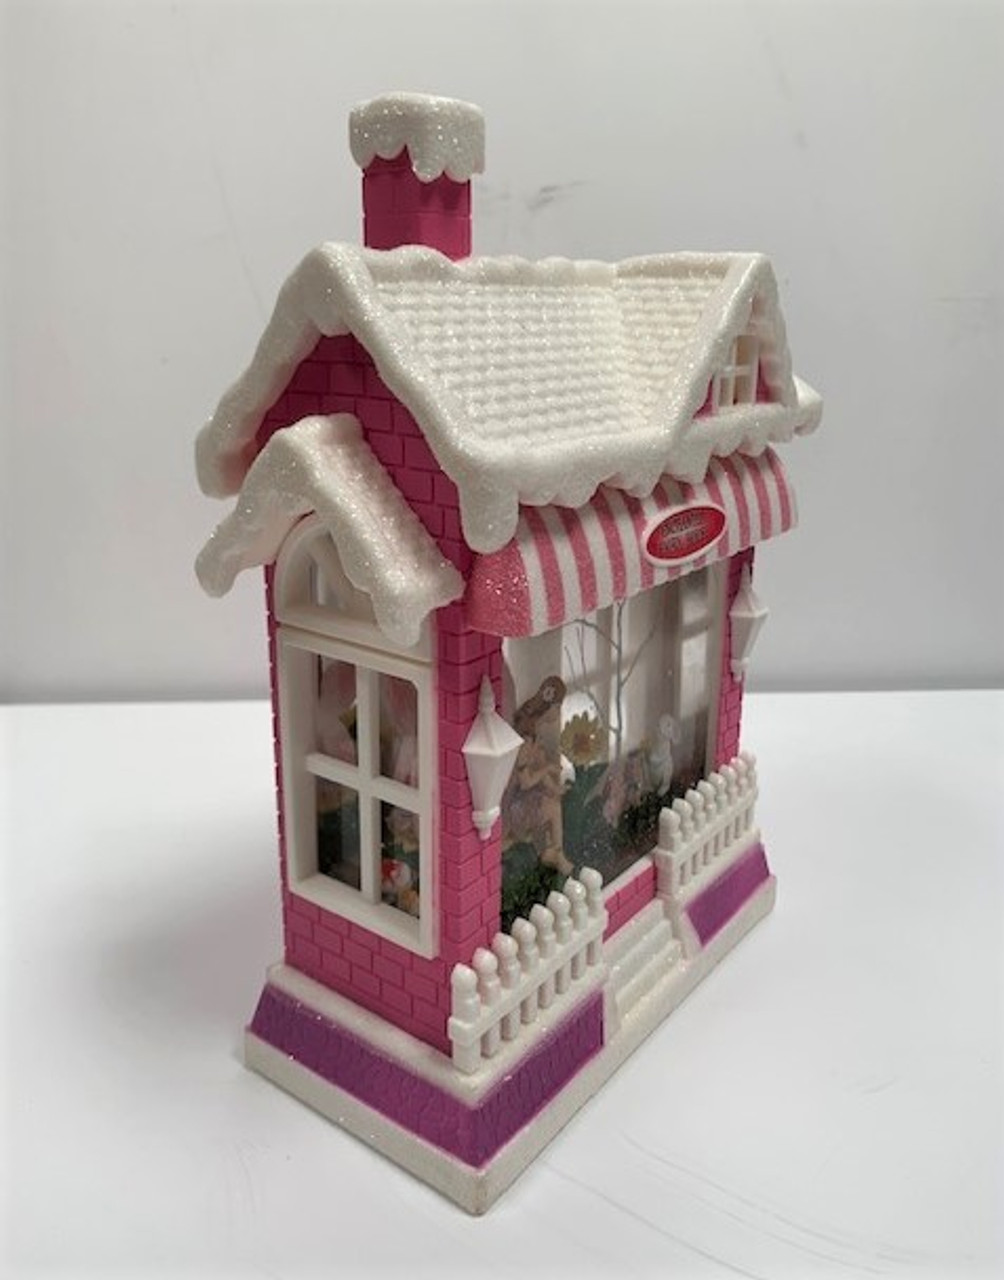 Chloes Garden Enchanted Fairy House side